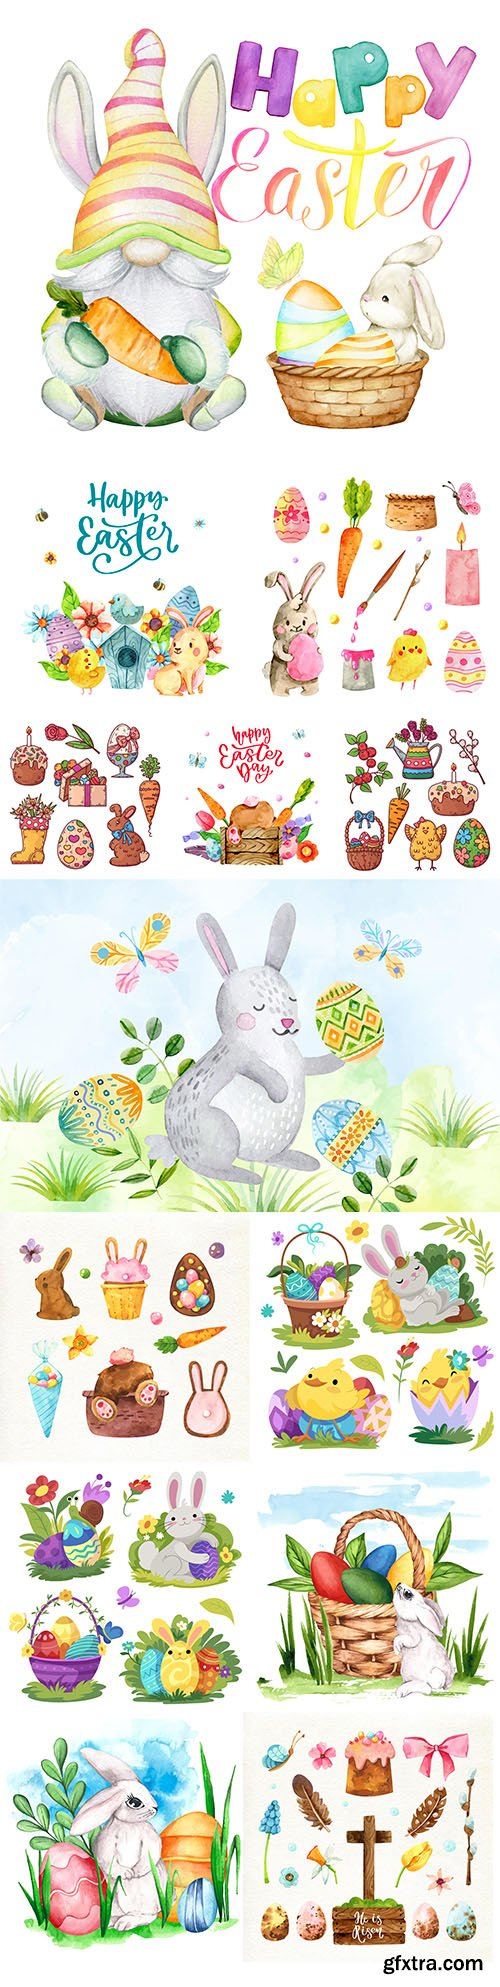 Happy Easter collection of watercolor illustrations and elements